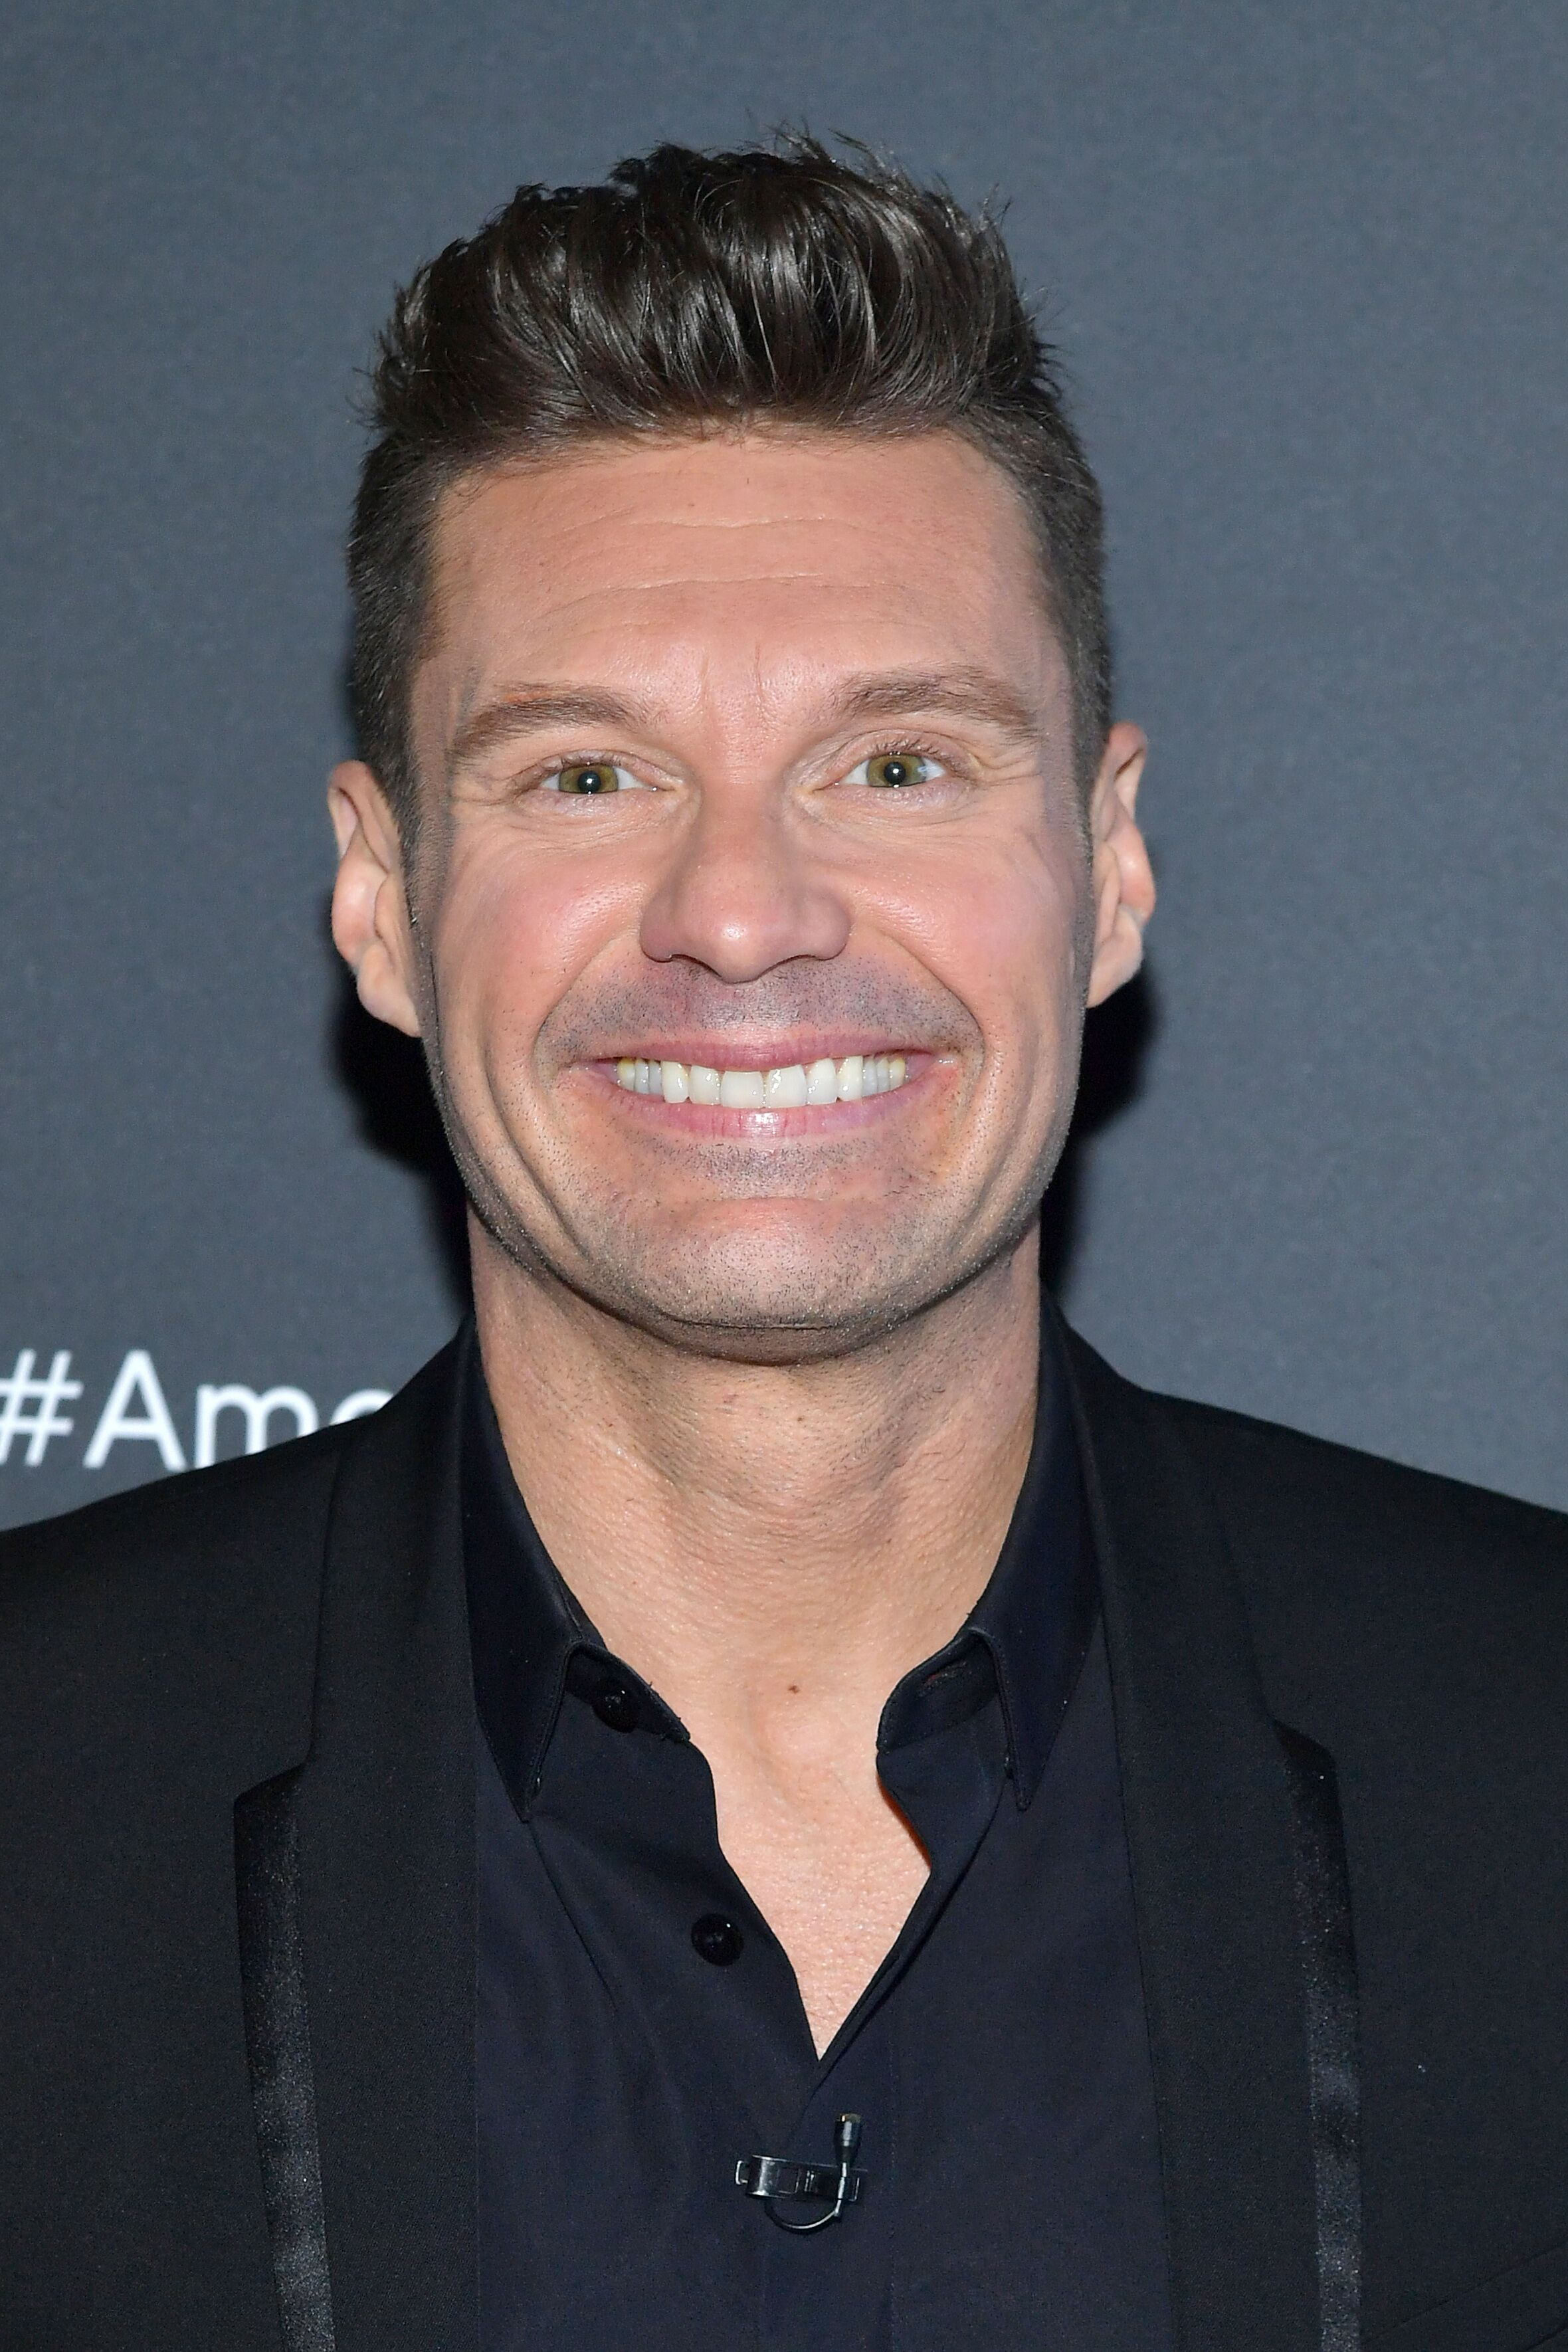 Ryan Seacrest at ABC's American Idol live show on May 12, 2019 in Los Angeles, California. | Source: Getty Images